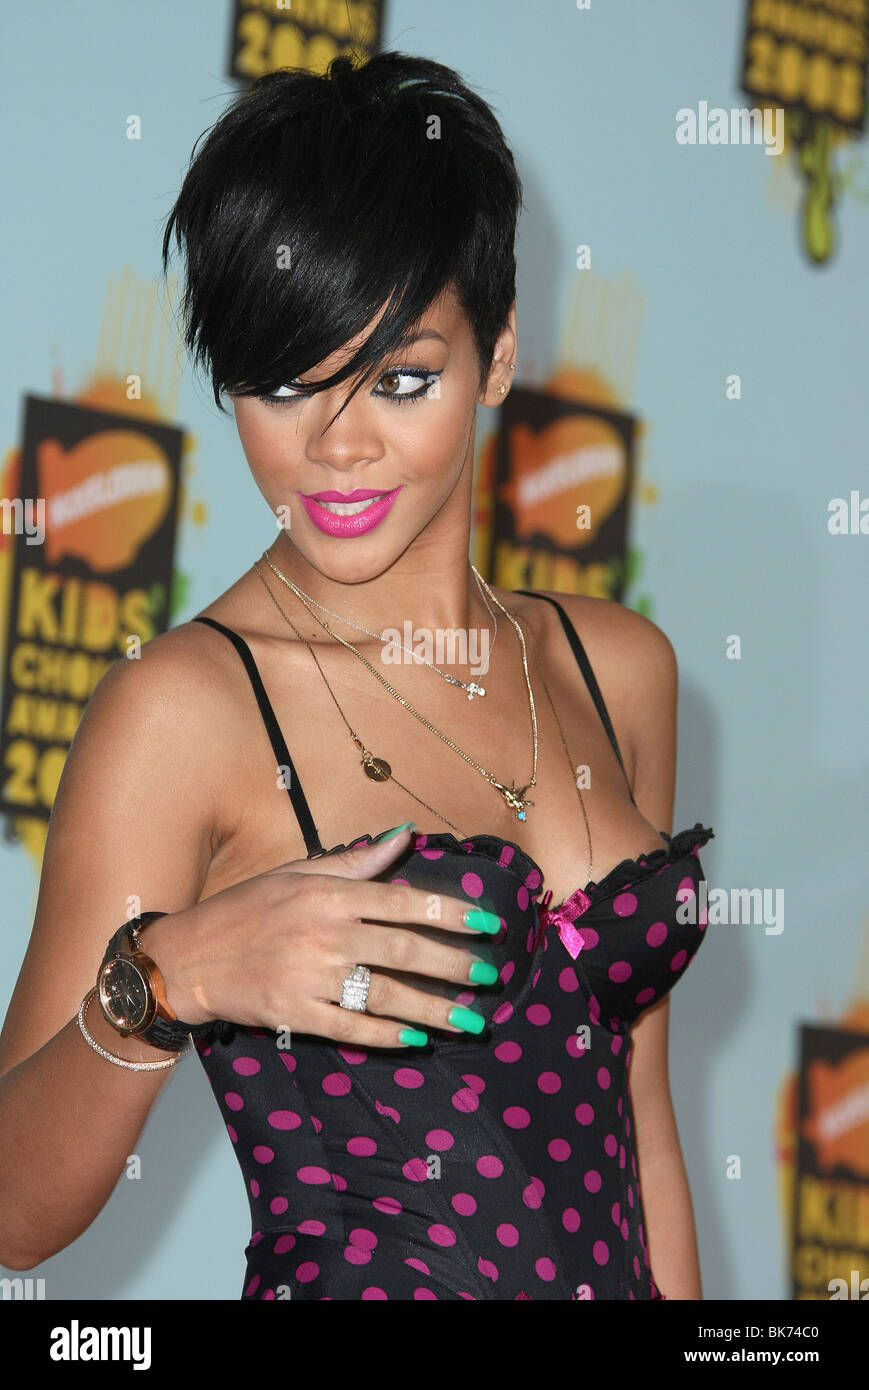 RIHANNA NICKELODEON'S 21ST KIDS CHOICE AWARDS UCLA WESTWOOD LOS ANGELES USA 29 March 2008 - Stock Image